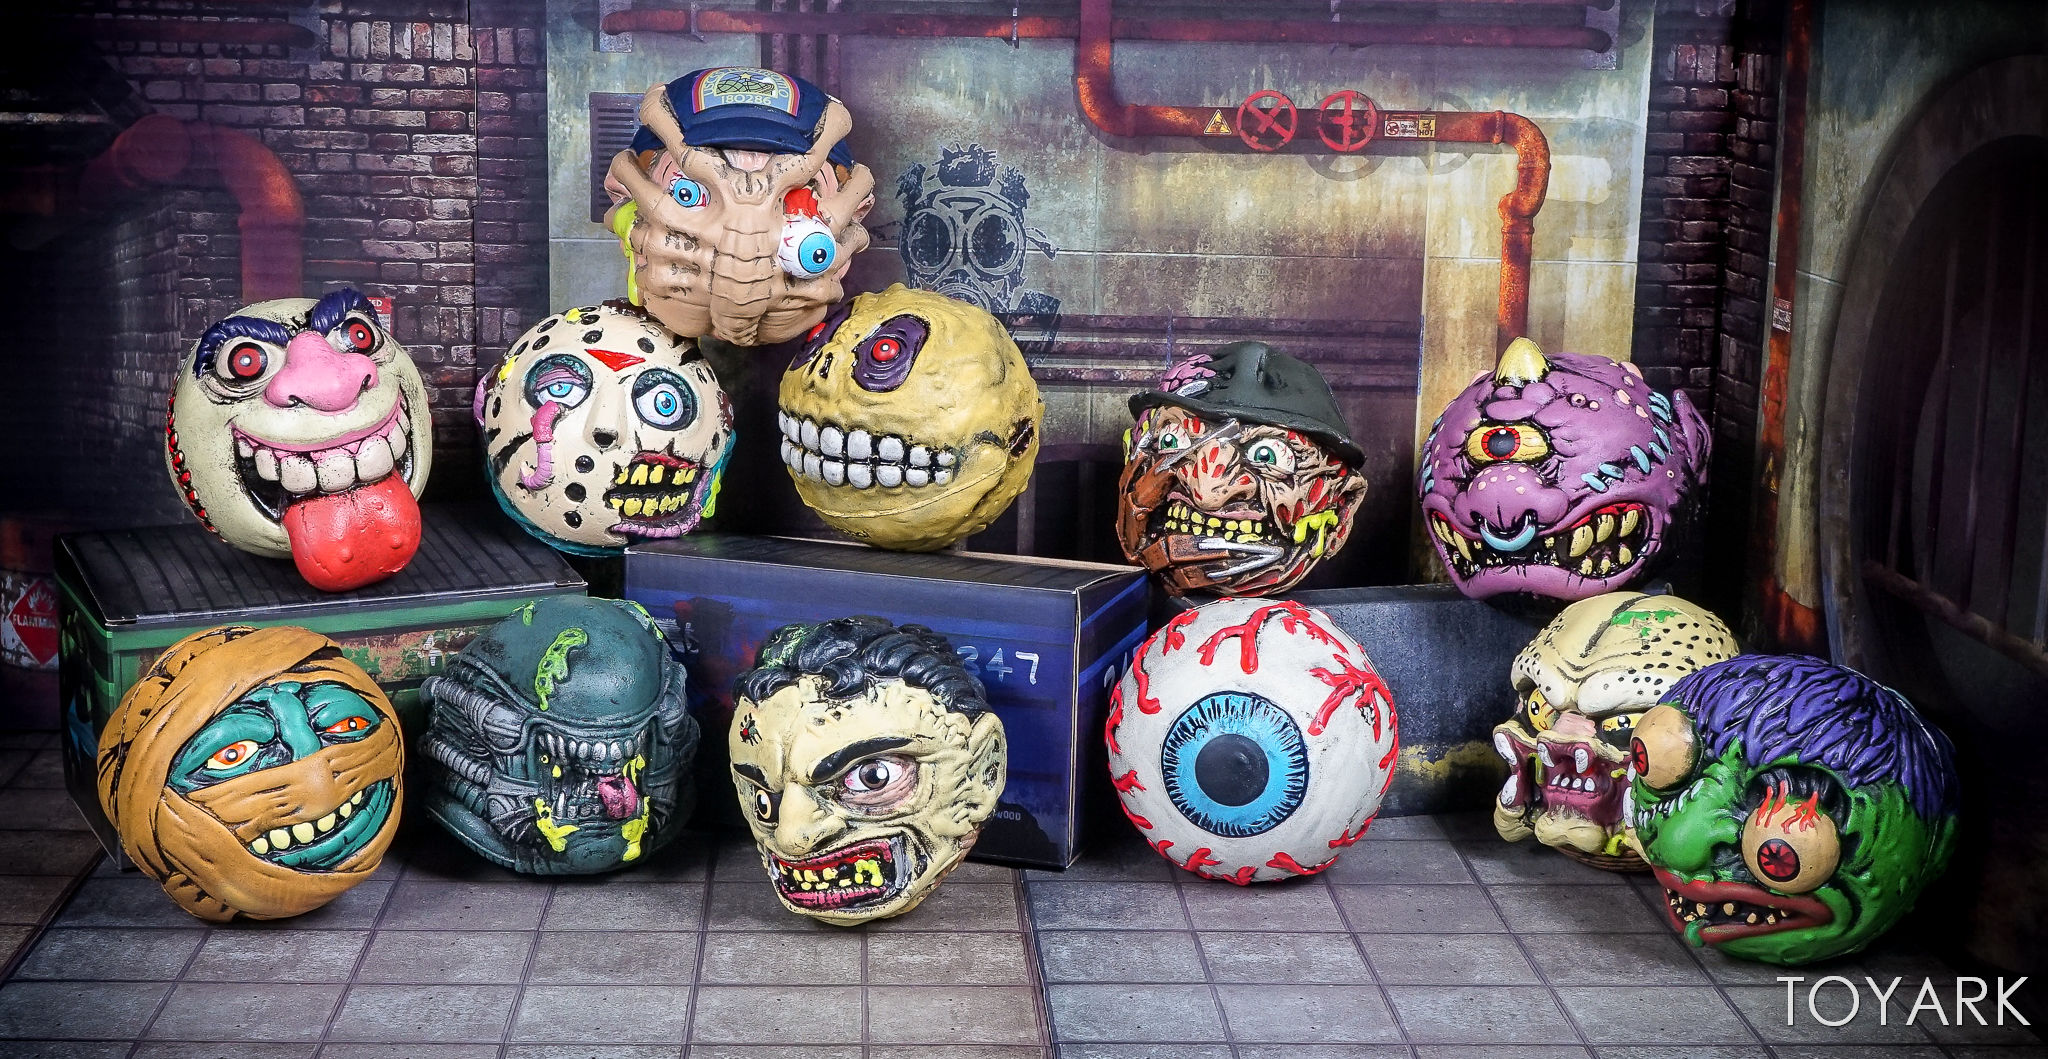 http://news.toyark.com/wp-content/uploads/sites/4/2017/09/Kidrobot-Horror-and-Sci-Fi-Madballs-046.jpg